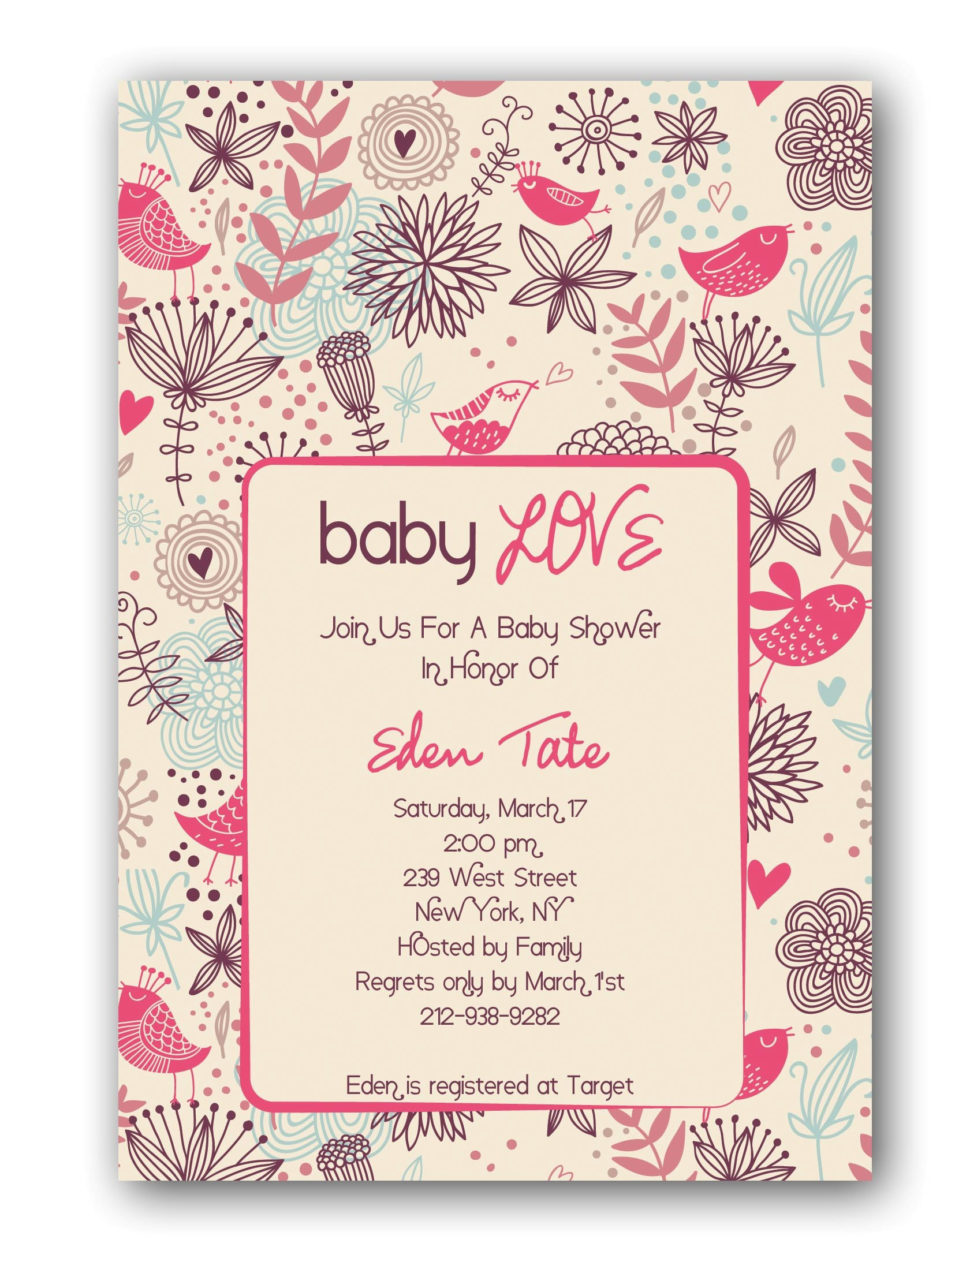 Medium Size of Baby Shower:63+ Delightful Cheap Baby Shower Invitations Image Inspirations Cheap Baby Shower Invitations Baby Shower Accessories Baby Shower Rentals Arreglos Para Baby Shower Adornos De Baby Shower Baby Shower Registry Mermaid Baby Shower Invitations Awesome Invitation For Baby Shower